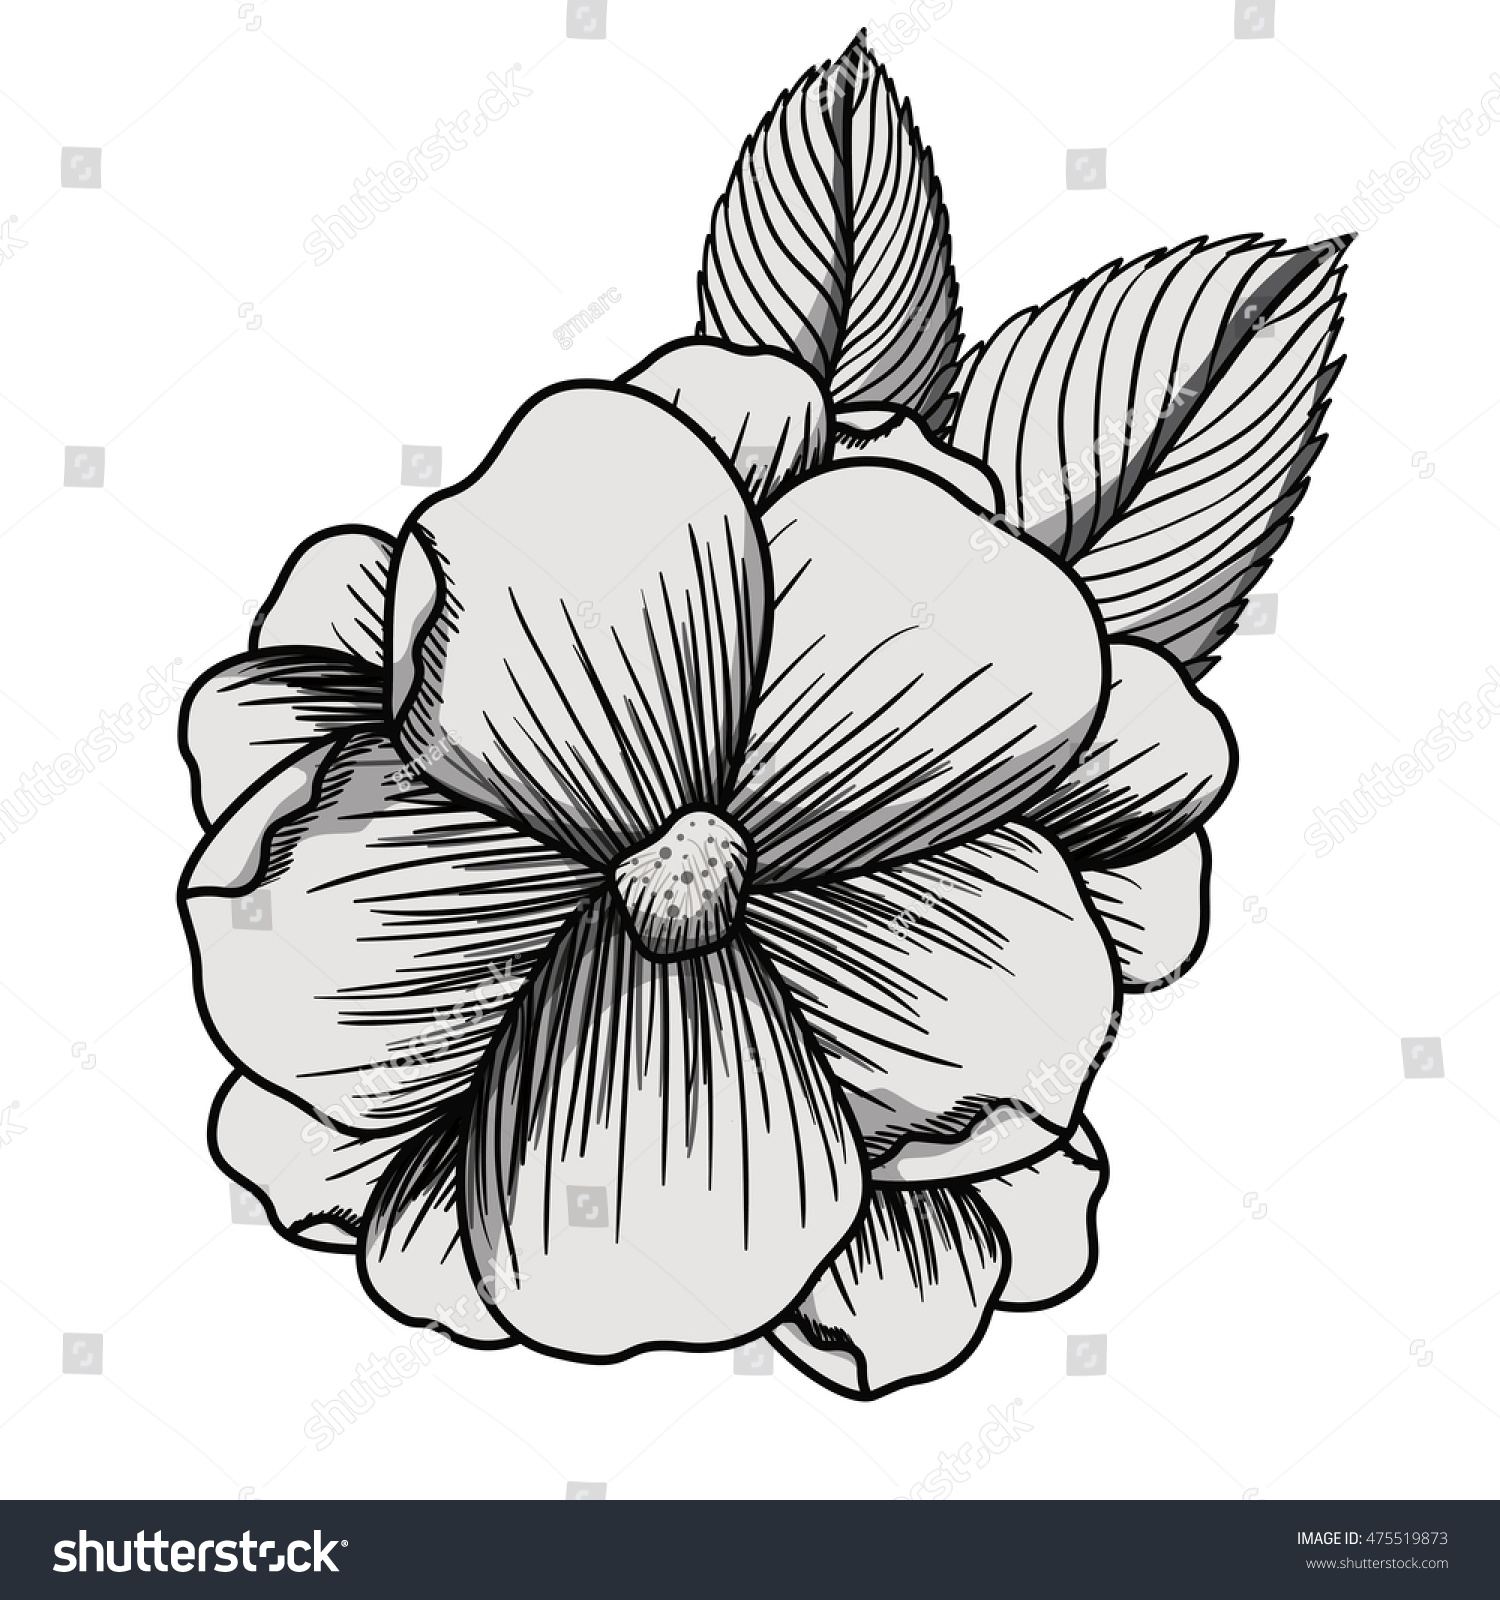 Beautiful Flower Drawing Isolated Vector Illustration Stock Vector